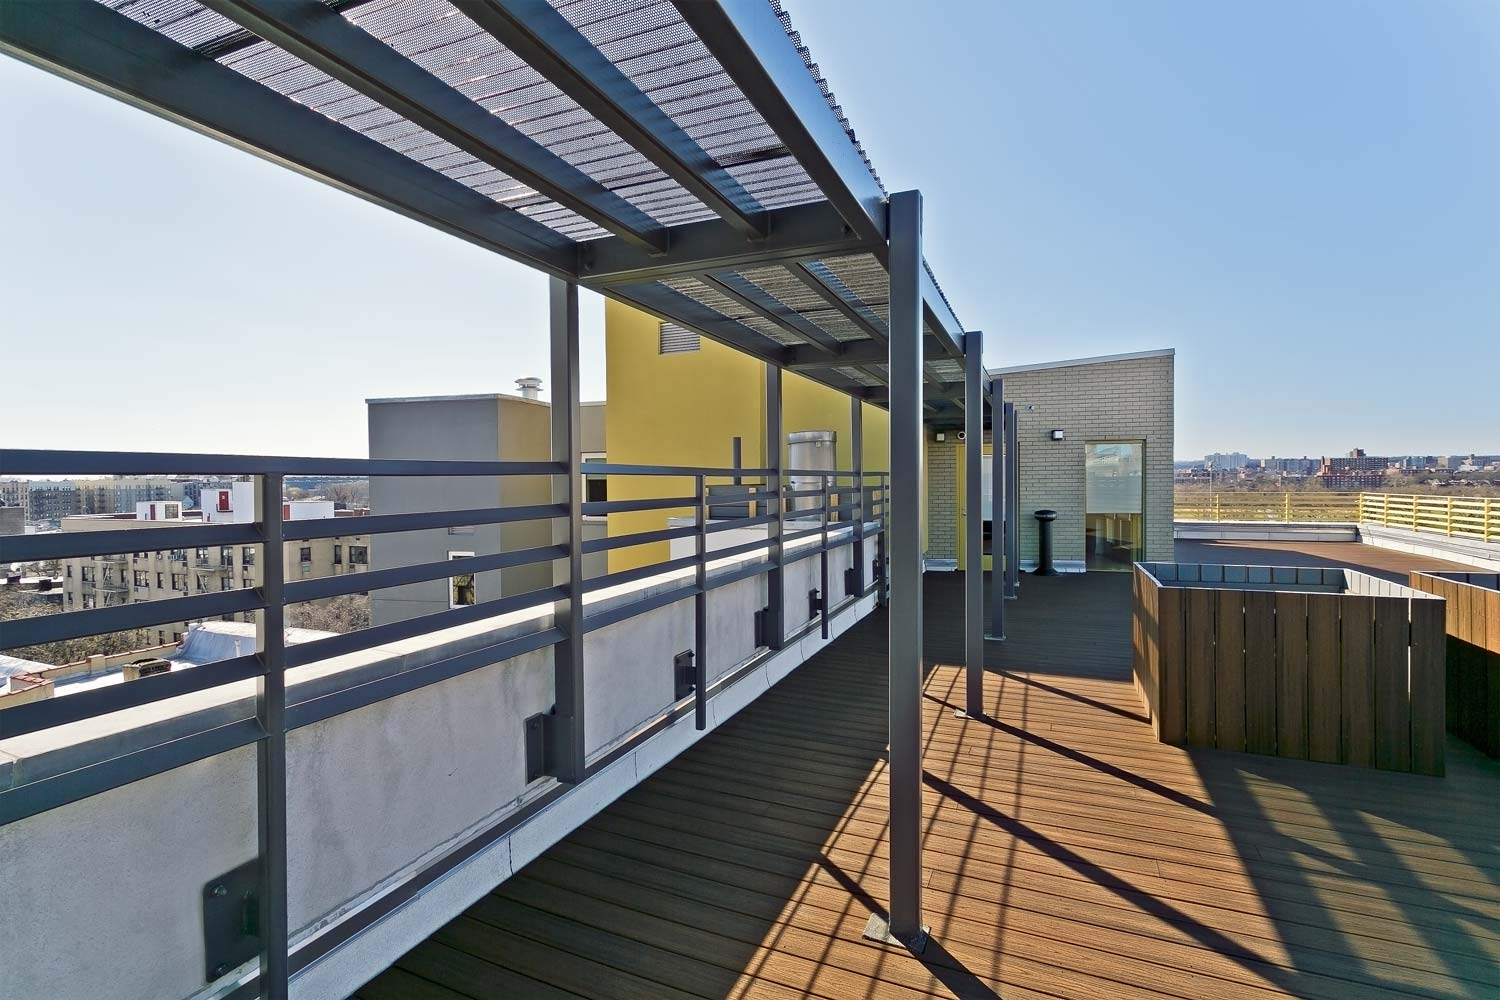 A large community room at the roof level is connected to a paved rooftop terrace.